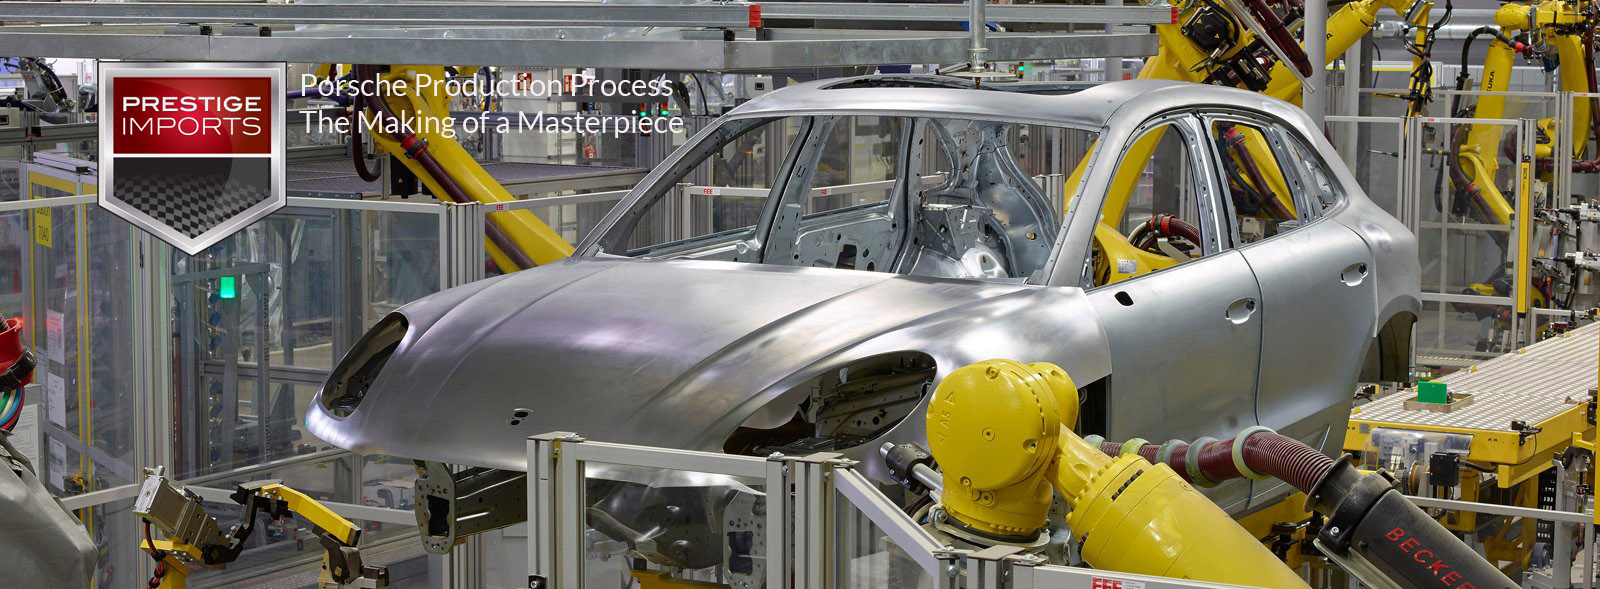 "Photo of a Porsche Macan on the assembly line - used to illustrate the article ""Porsche Production Process: The Making of a Masterpiece"""